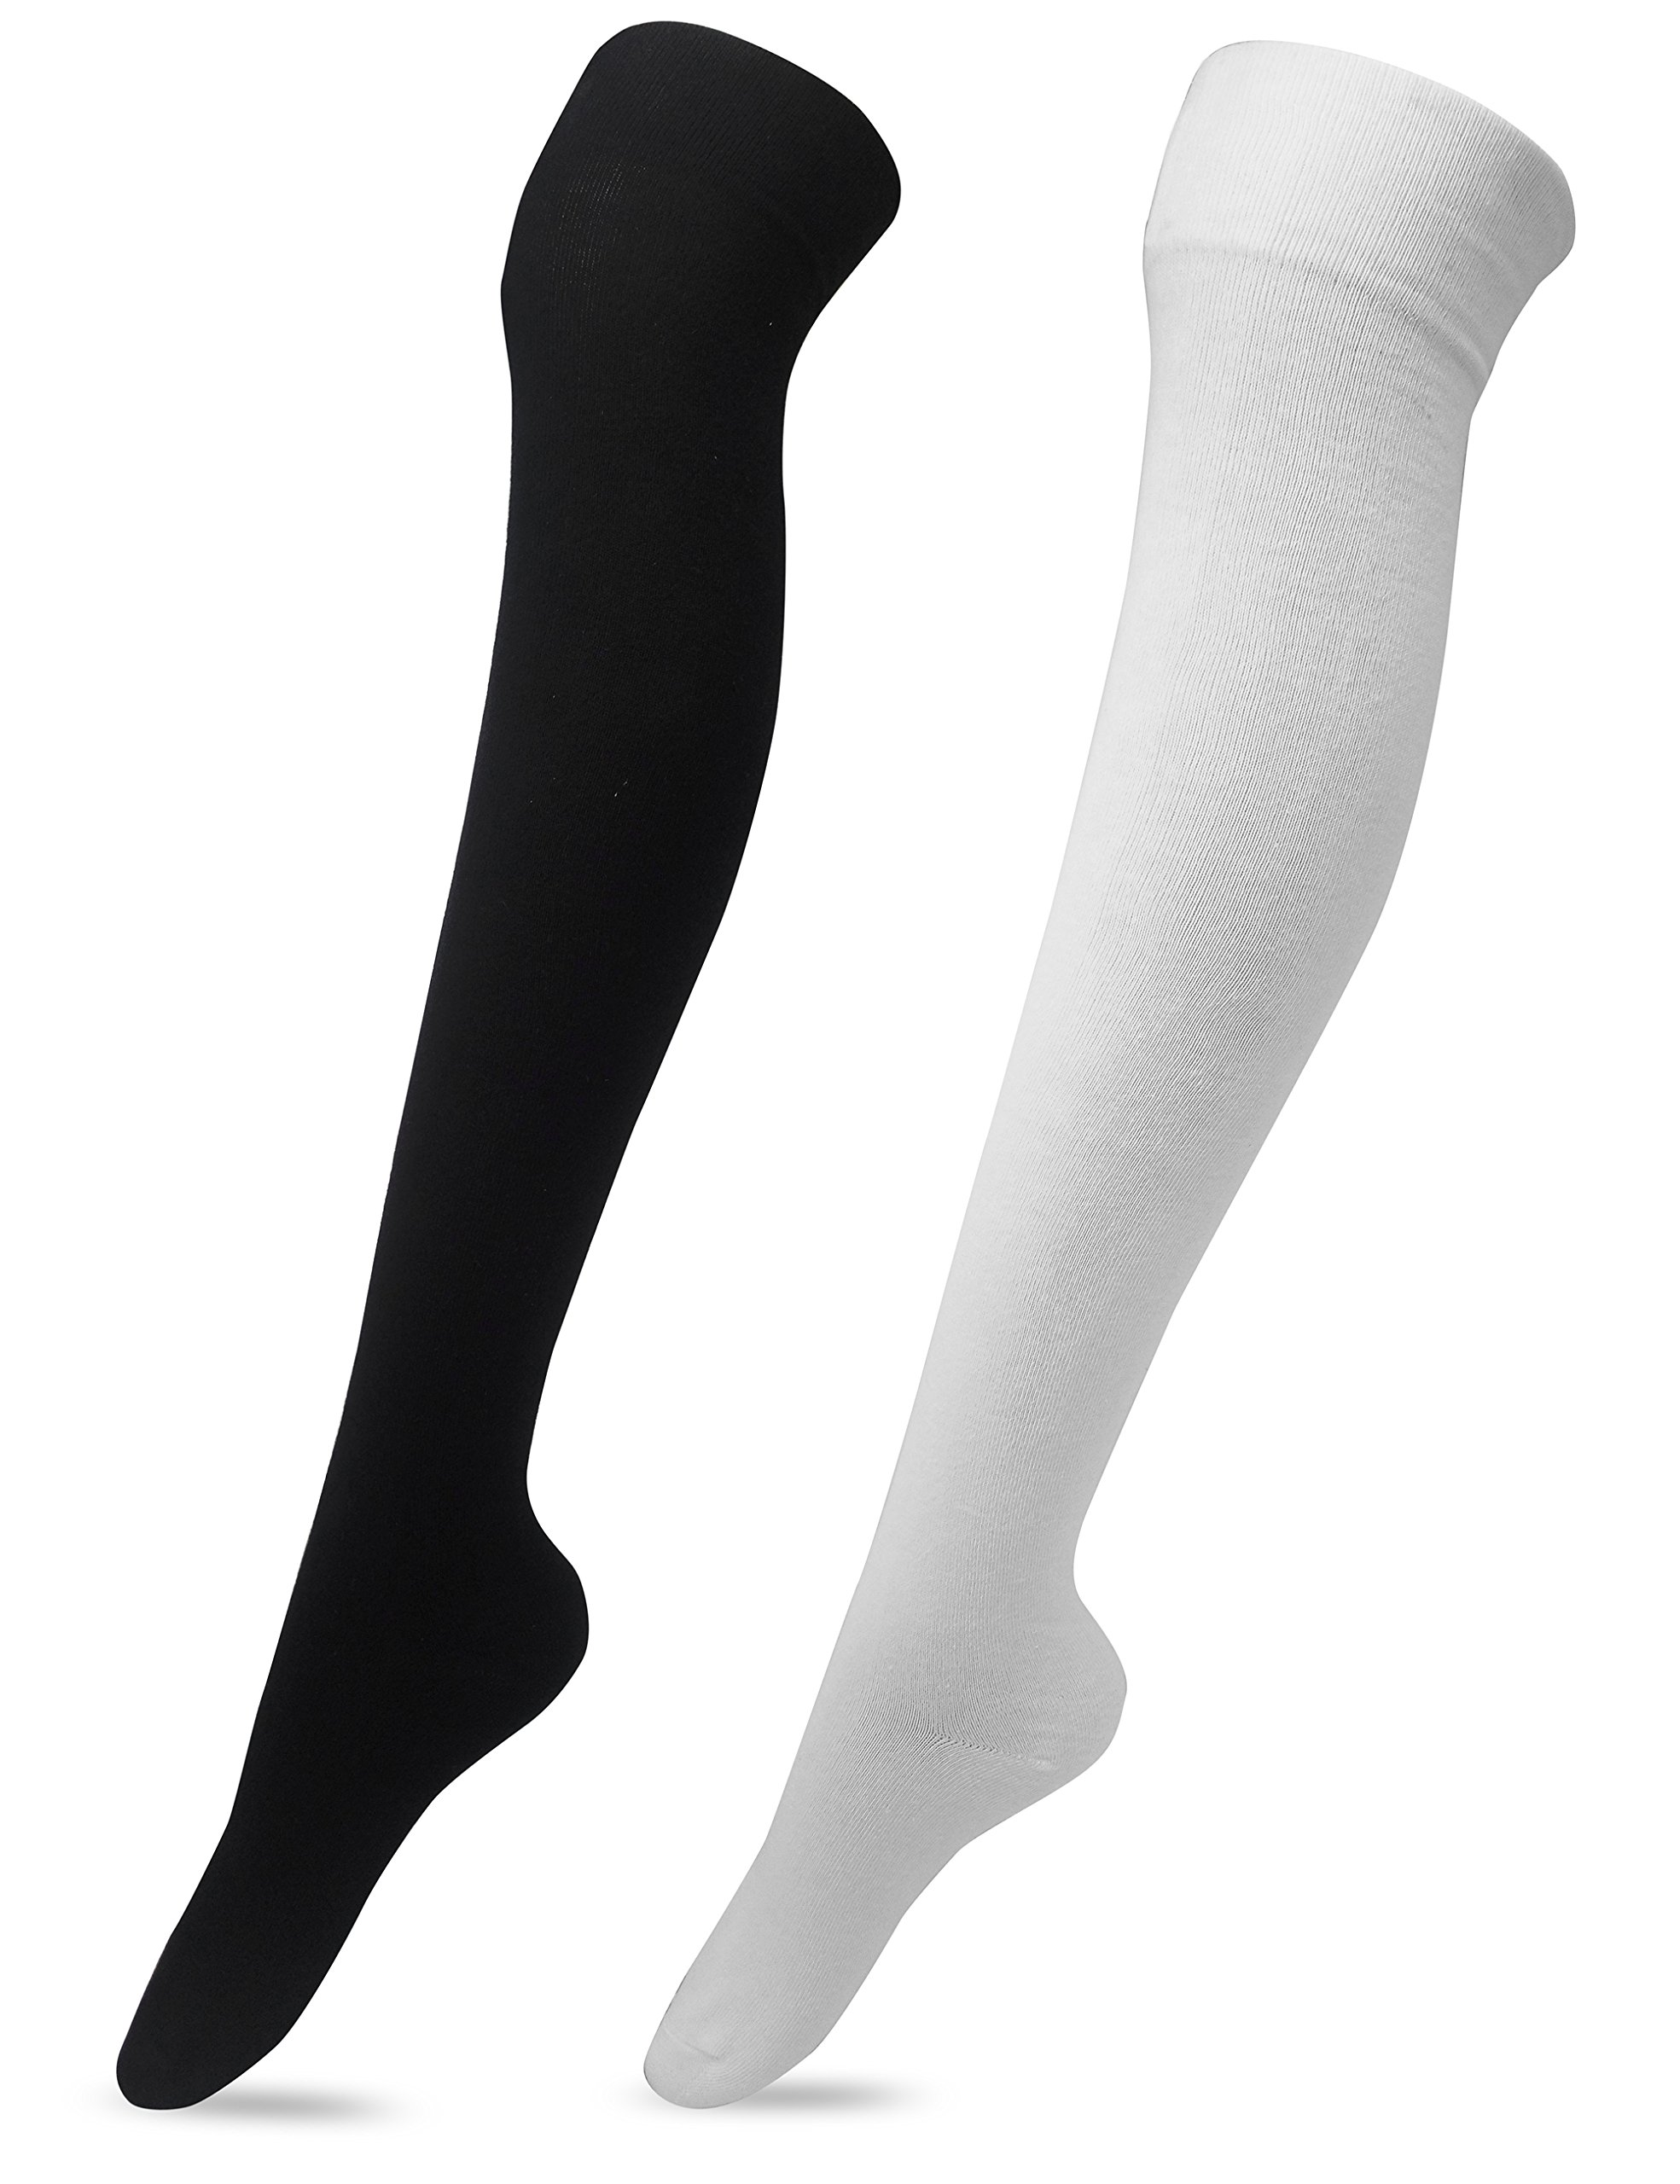 Women's Over The Knee High Socks 2 Pairs,White&black,One Size